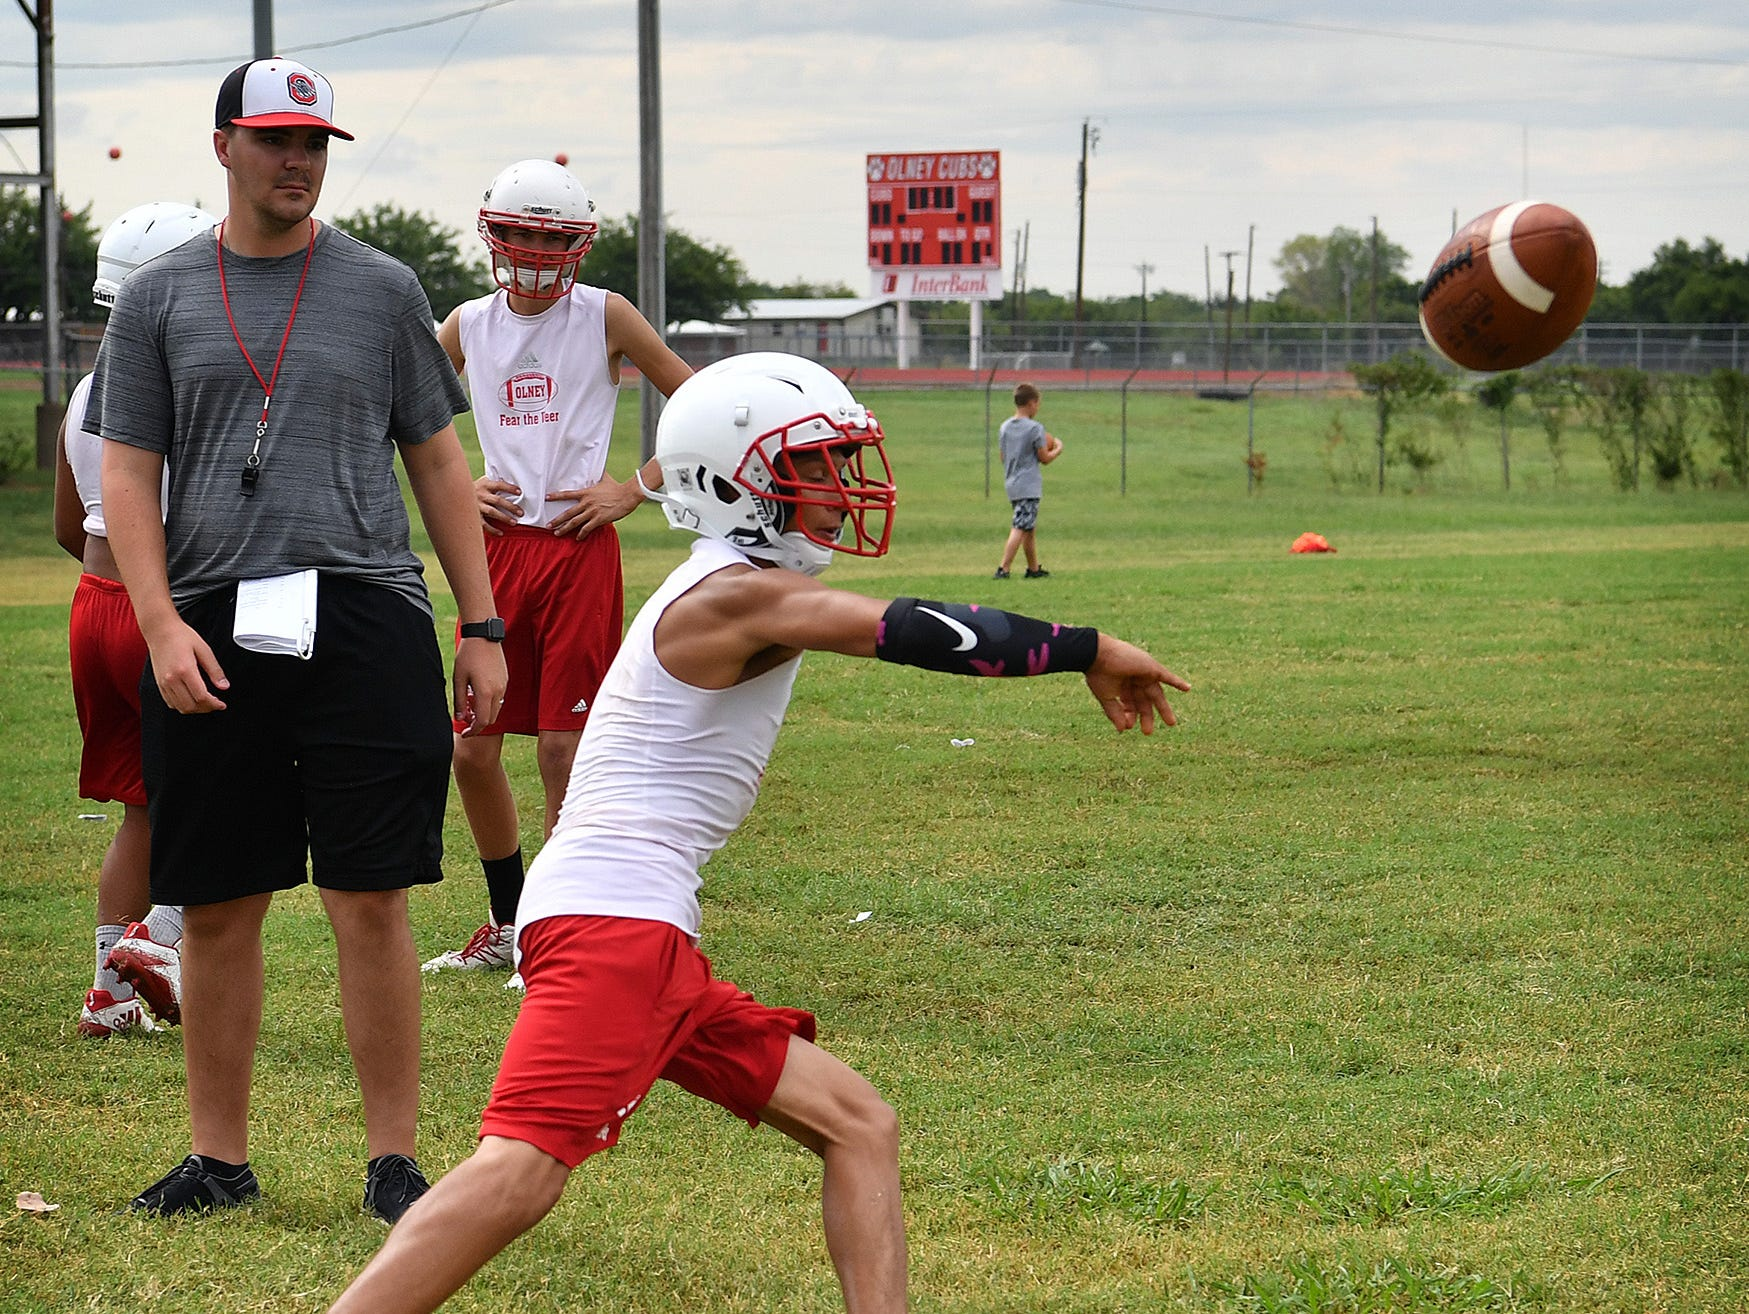 The Olney Cubs have a new offense they will be running this season. Head Coach Jody Guy will run the flexbone offense.